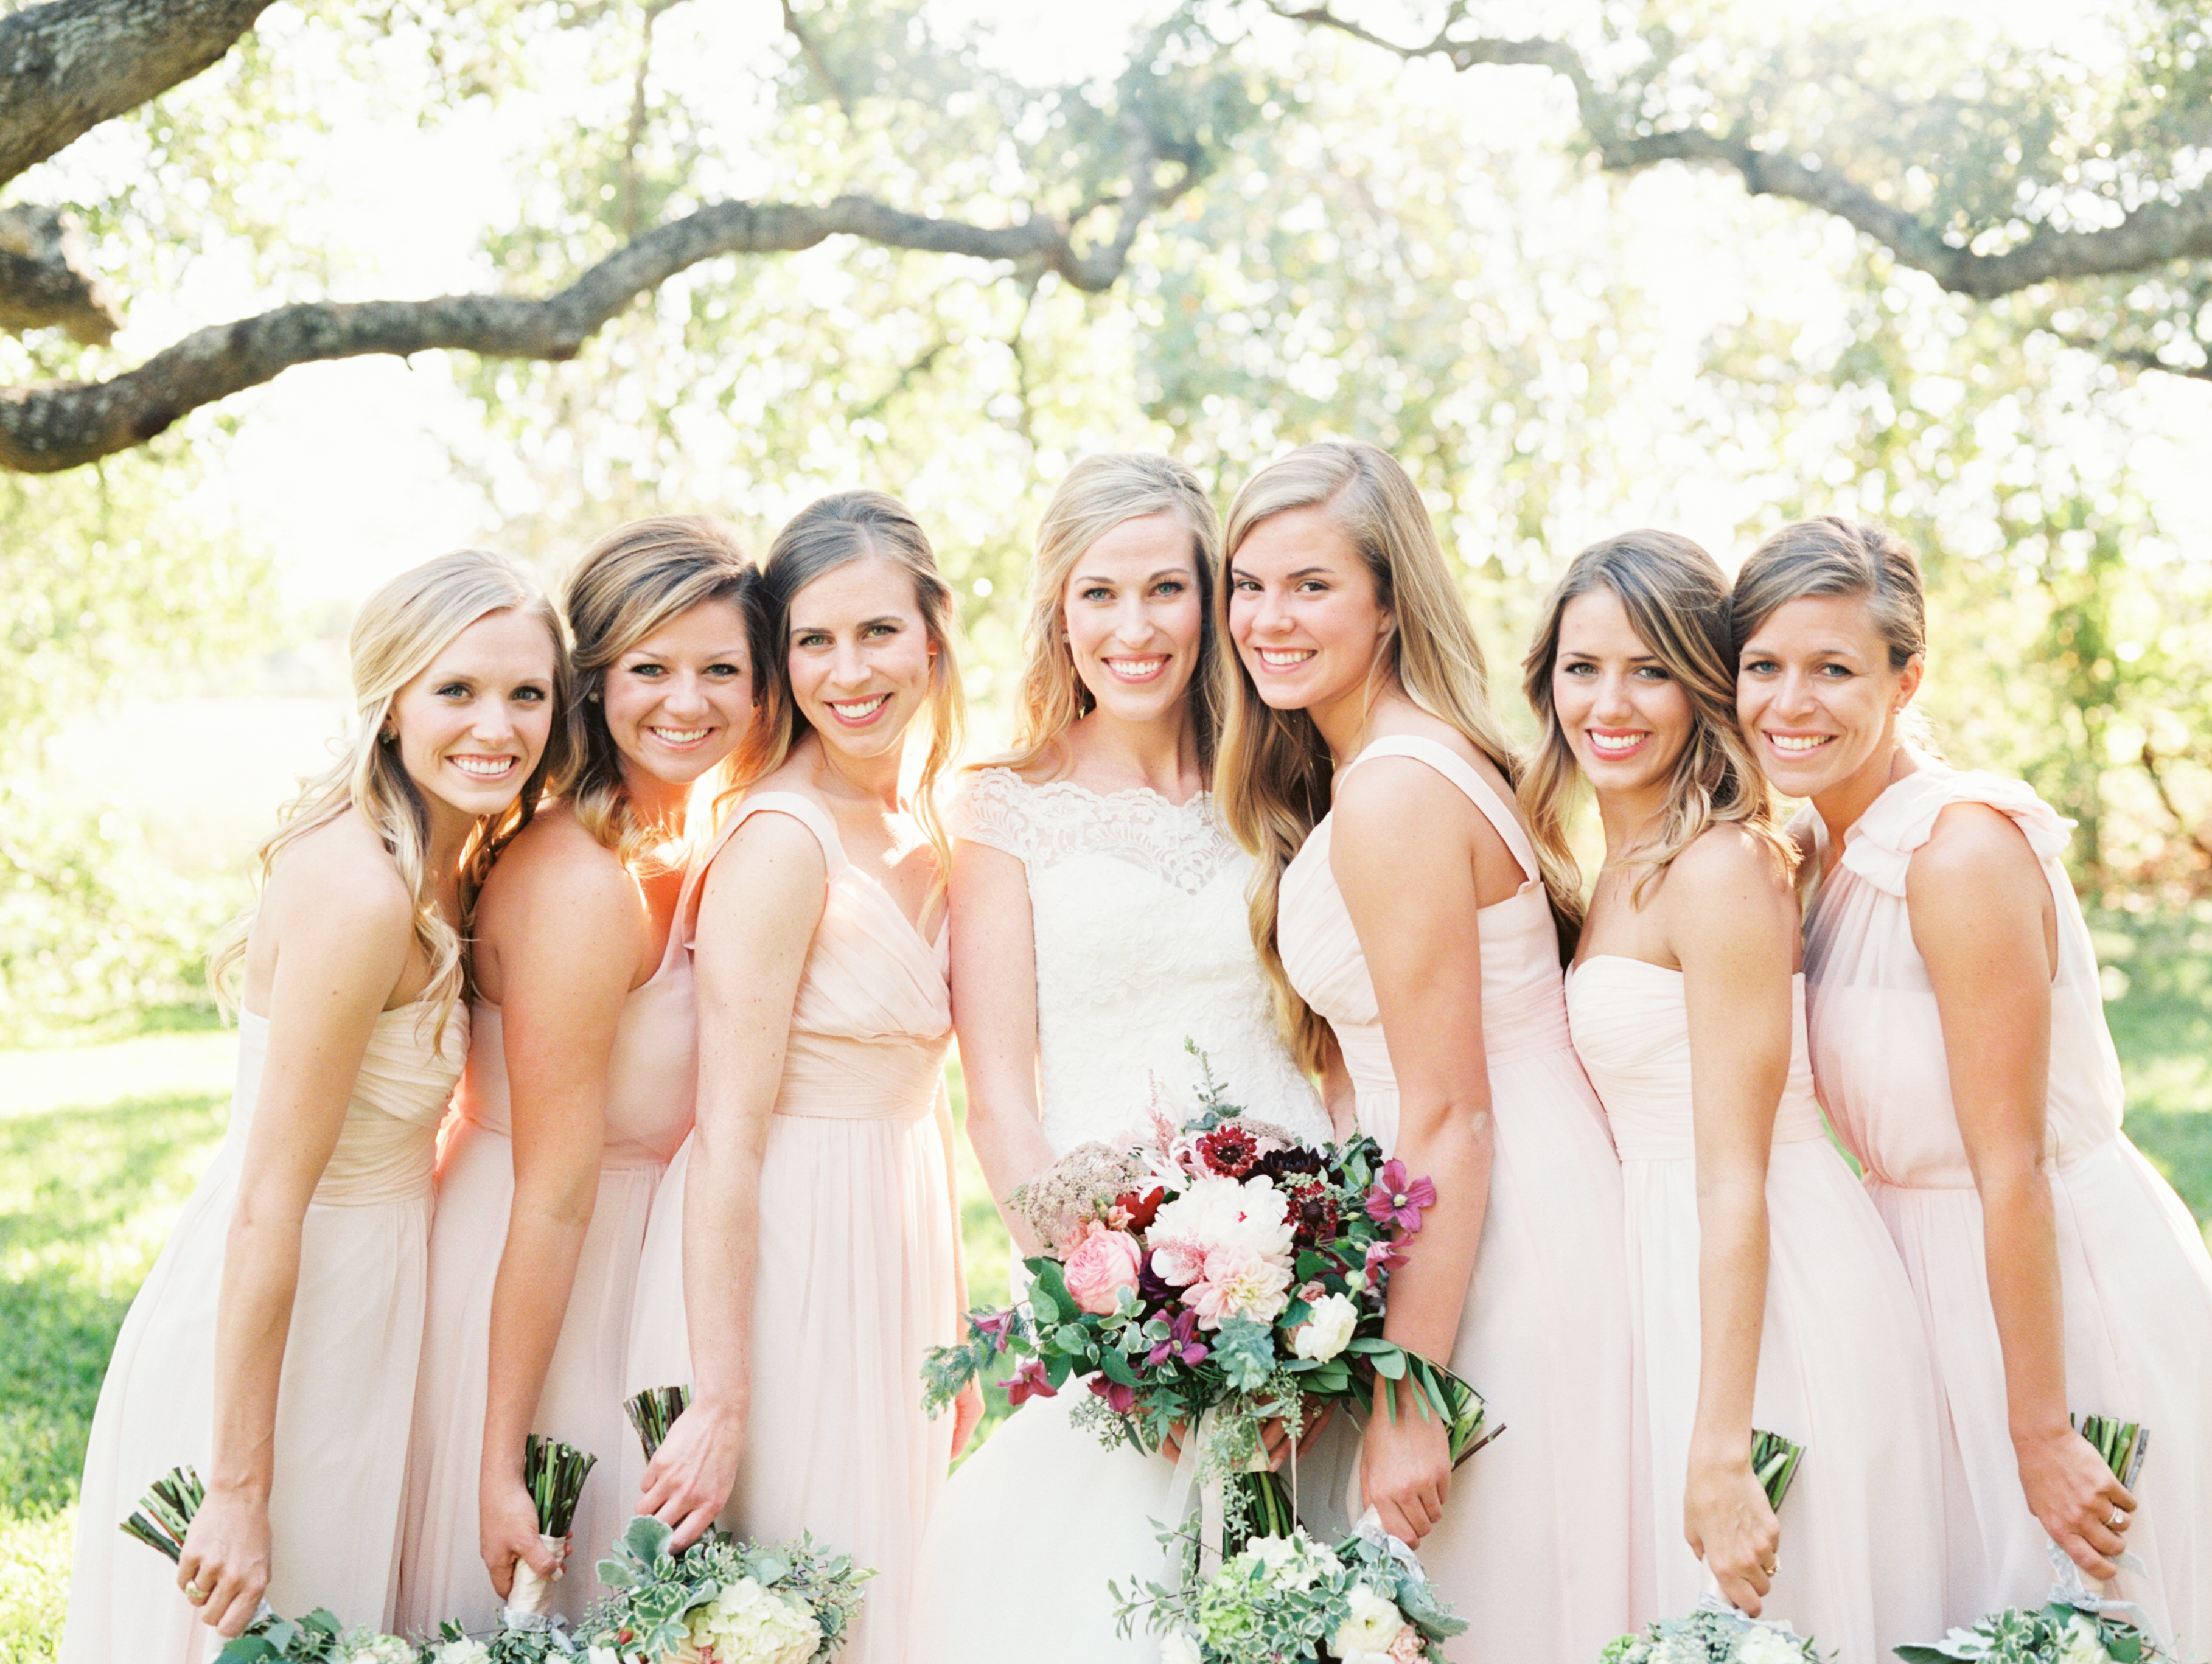 Pink ann taylor bridesmaids dresses elizabeth anne designs the pink ann taylor bridesmaids dresses elizabeth anne designs the wedding blog junglespirit Image collections